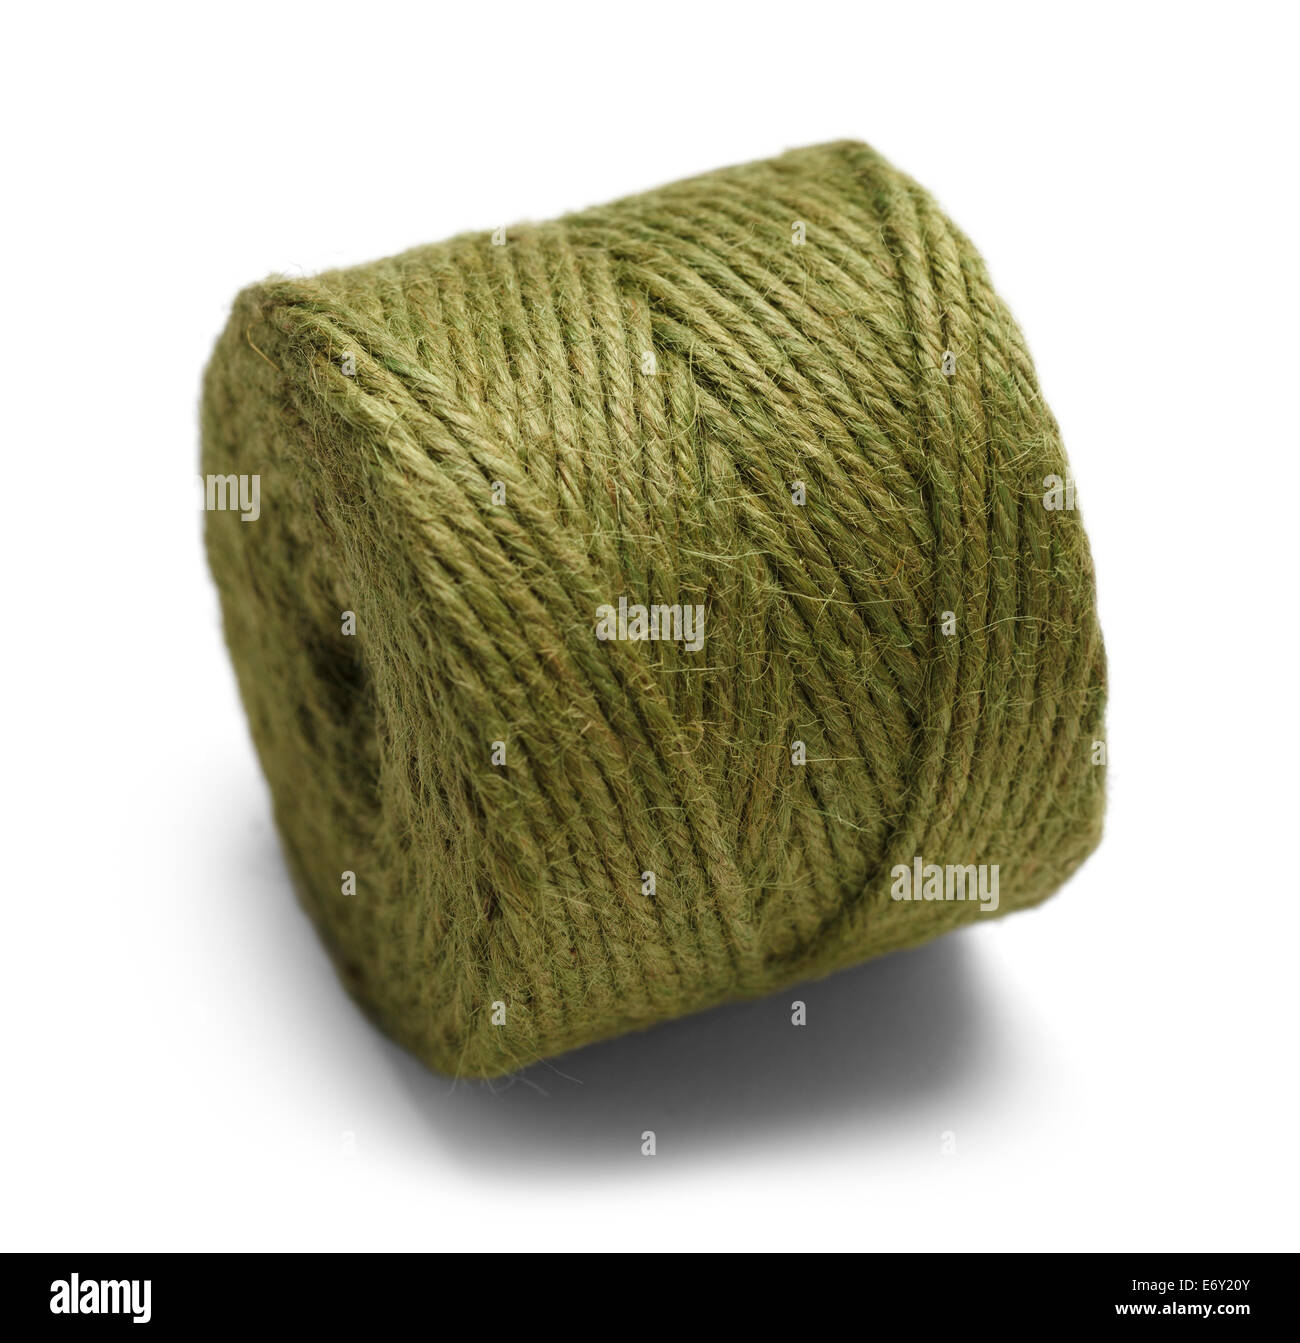 Green Rope Wound in a Spool Isolated on White Background. - Stock Image